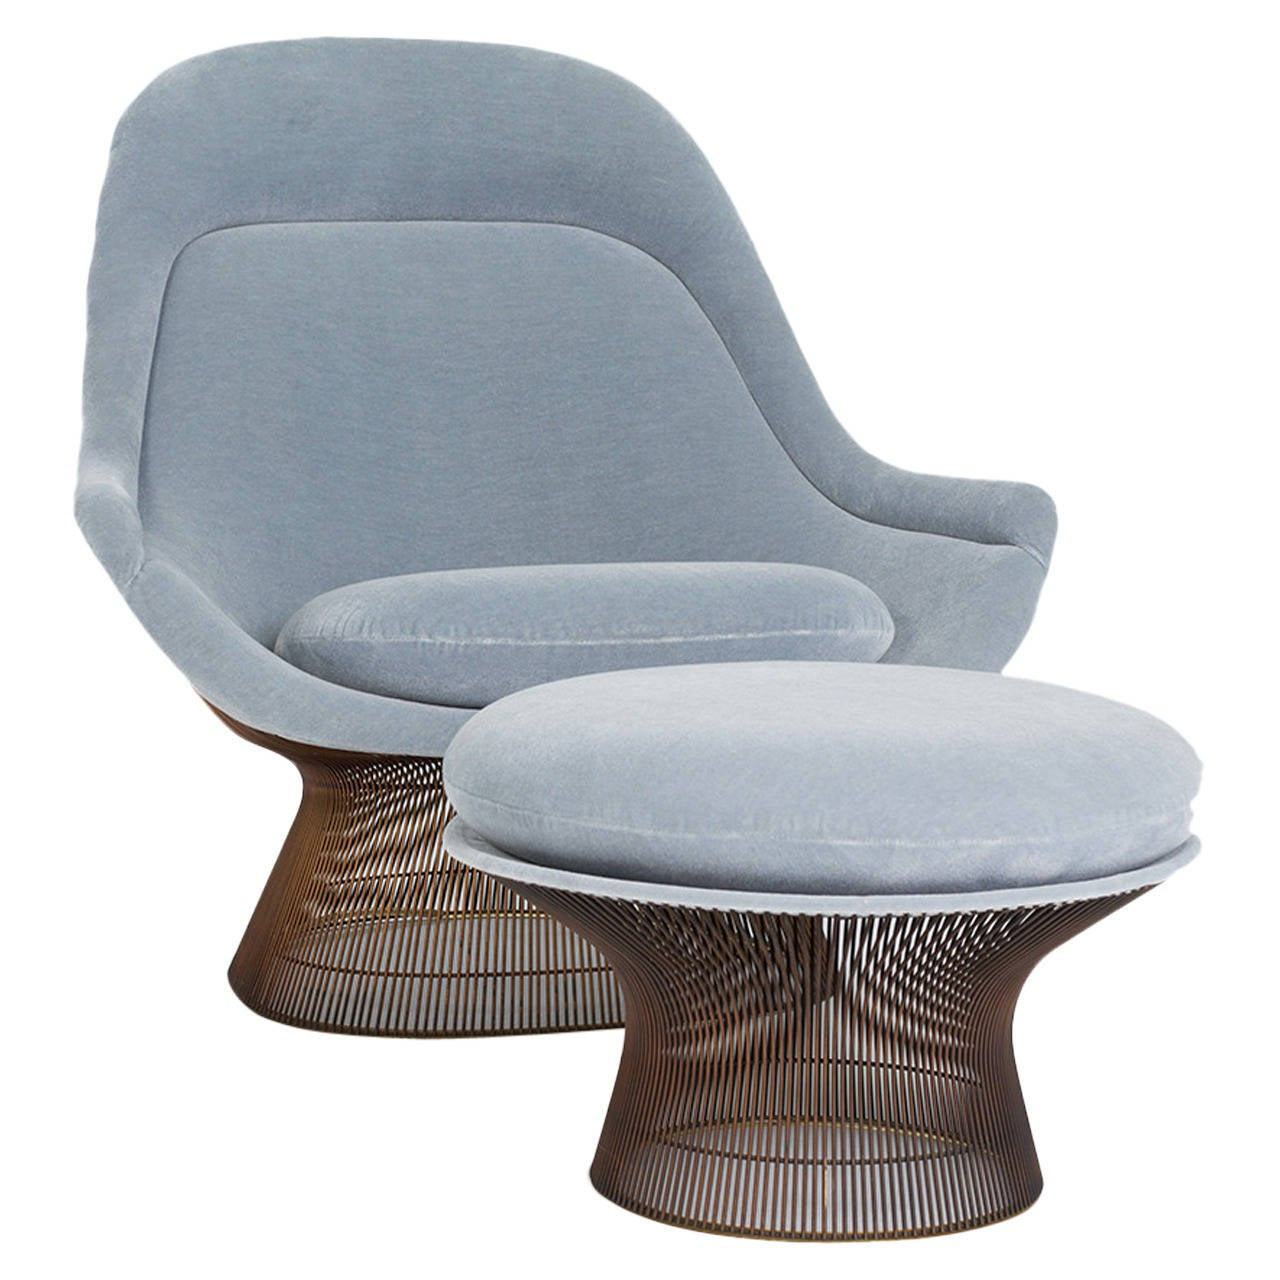 Warren platner lounge chair and ottoman for knoll at 1stdibs - Knoll inc chairs ...